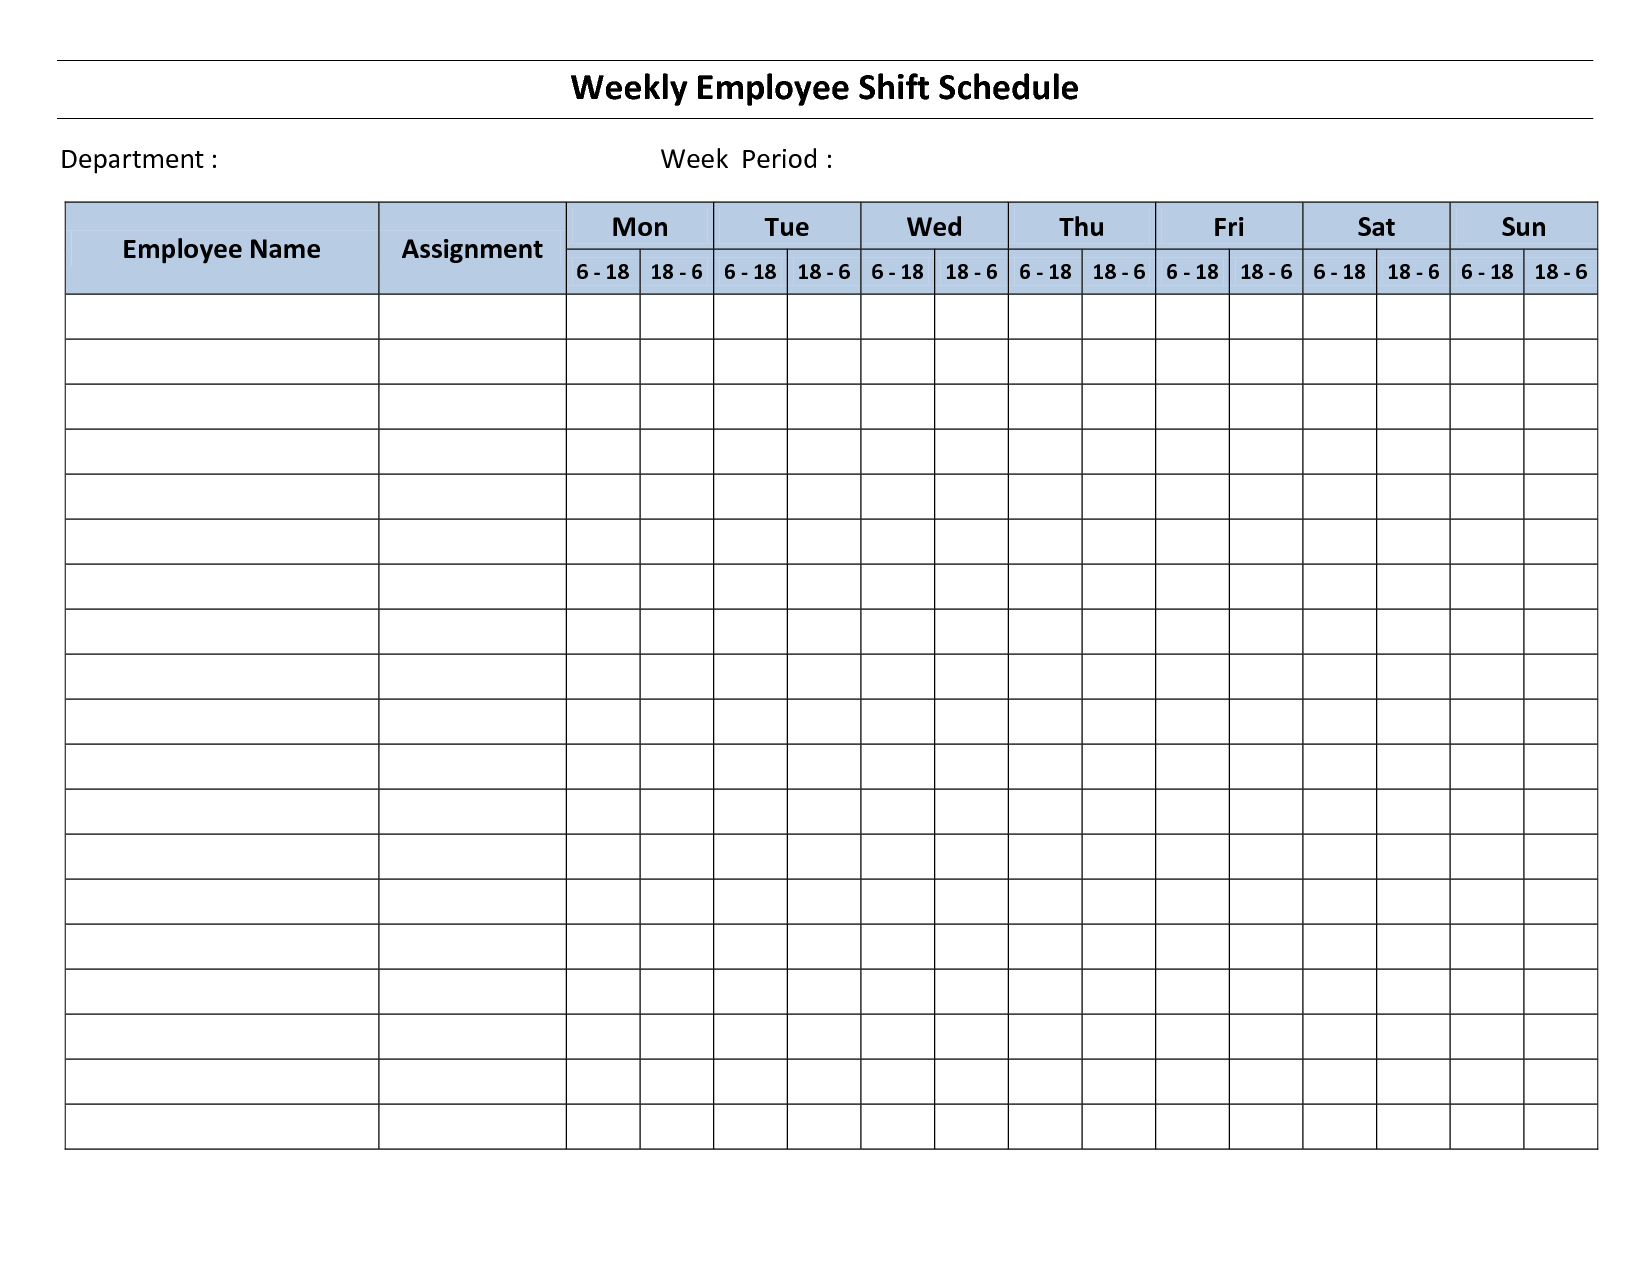 Agenda Meeting Template Word Fascinating Printable Weekly Employee Schedule Template  Wyldewood Op .